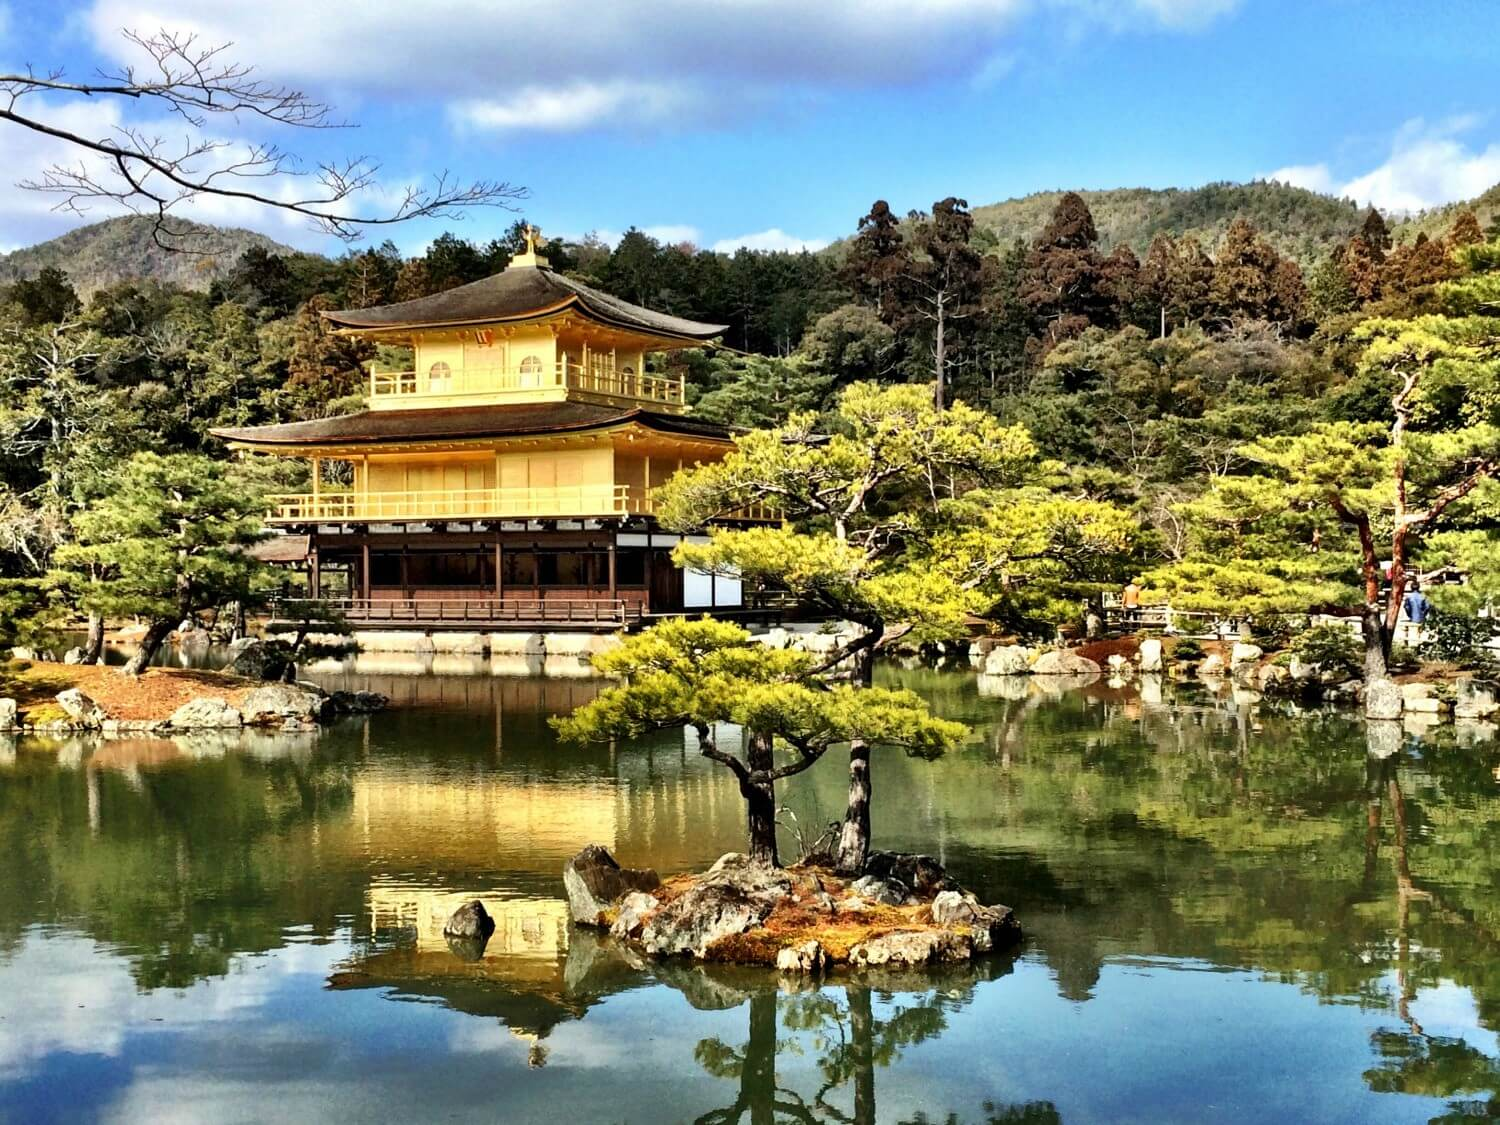 photos of kyoto golden pavilion